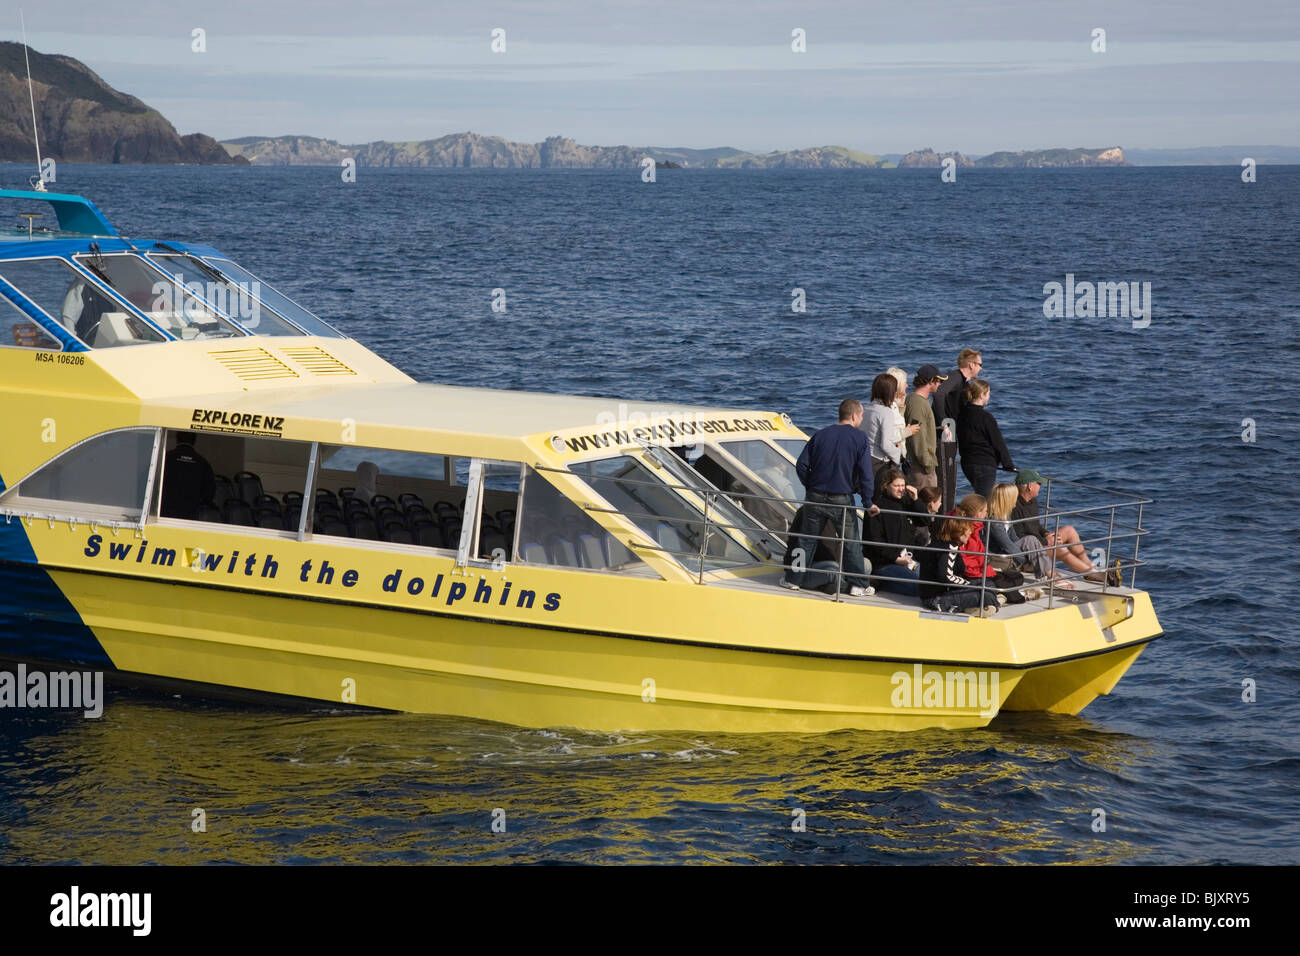 Bay of Islands North Island New Zealand. Dolphin watching tourist group on yellow 'Swim with the Dolphins' - Stock Image